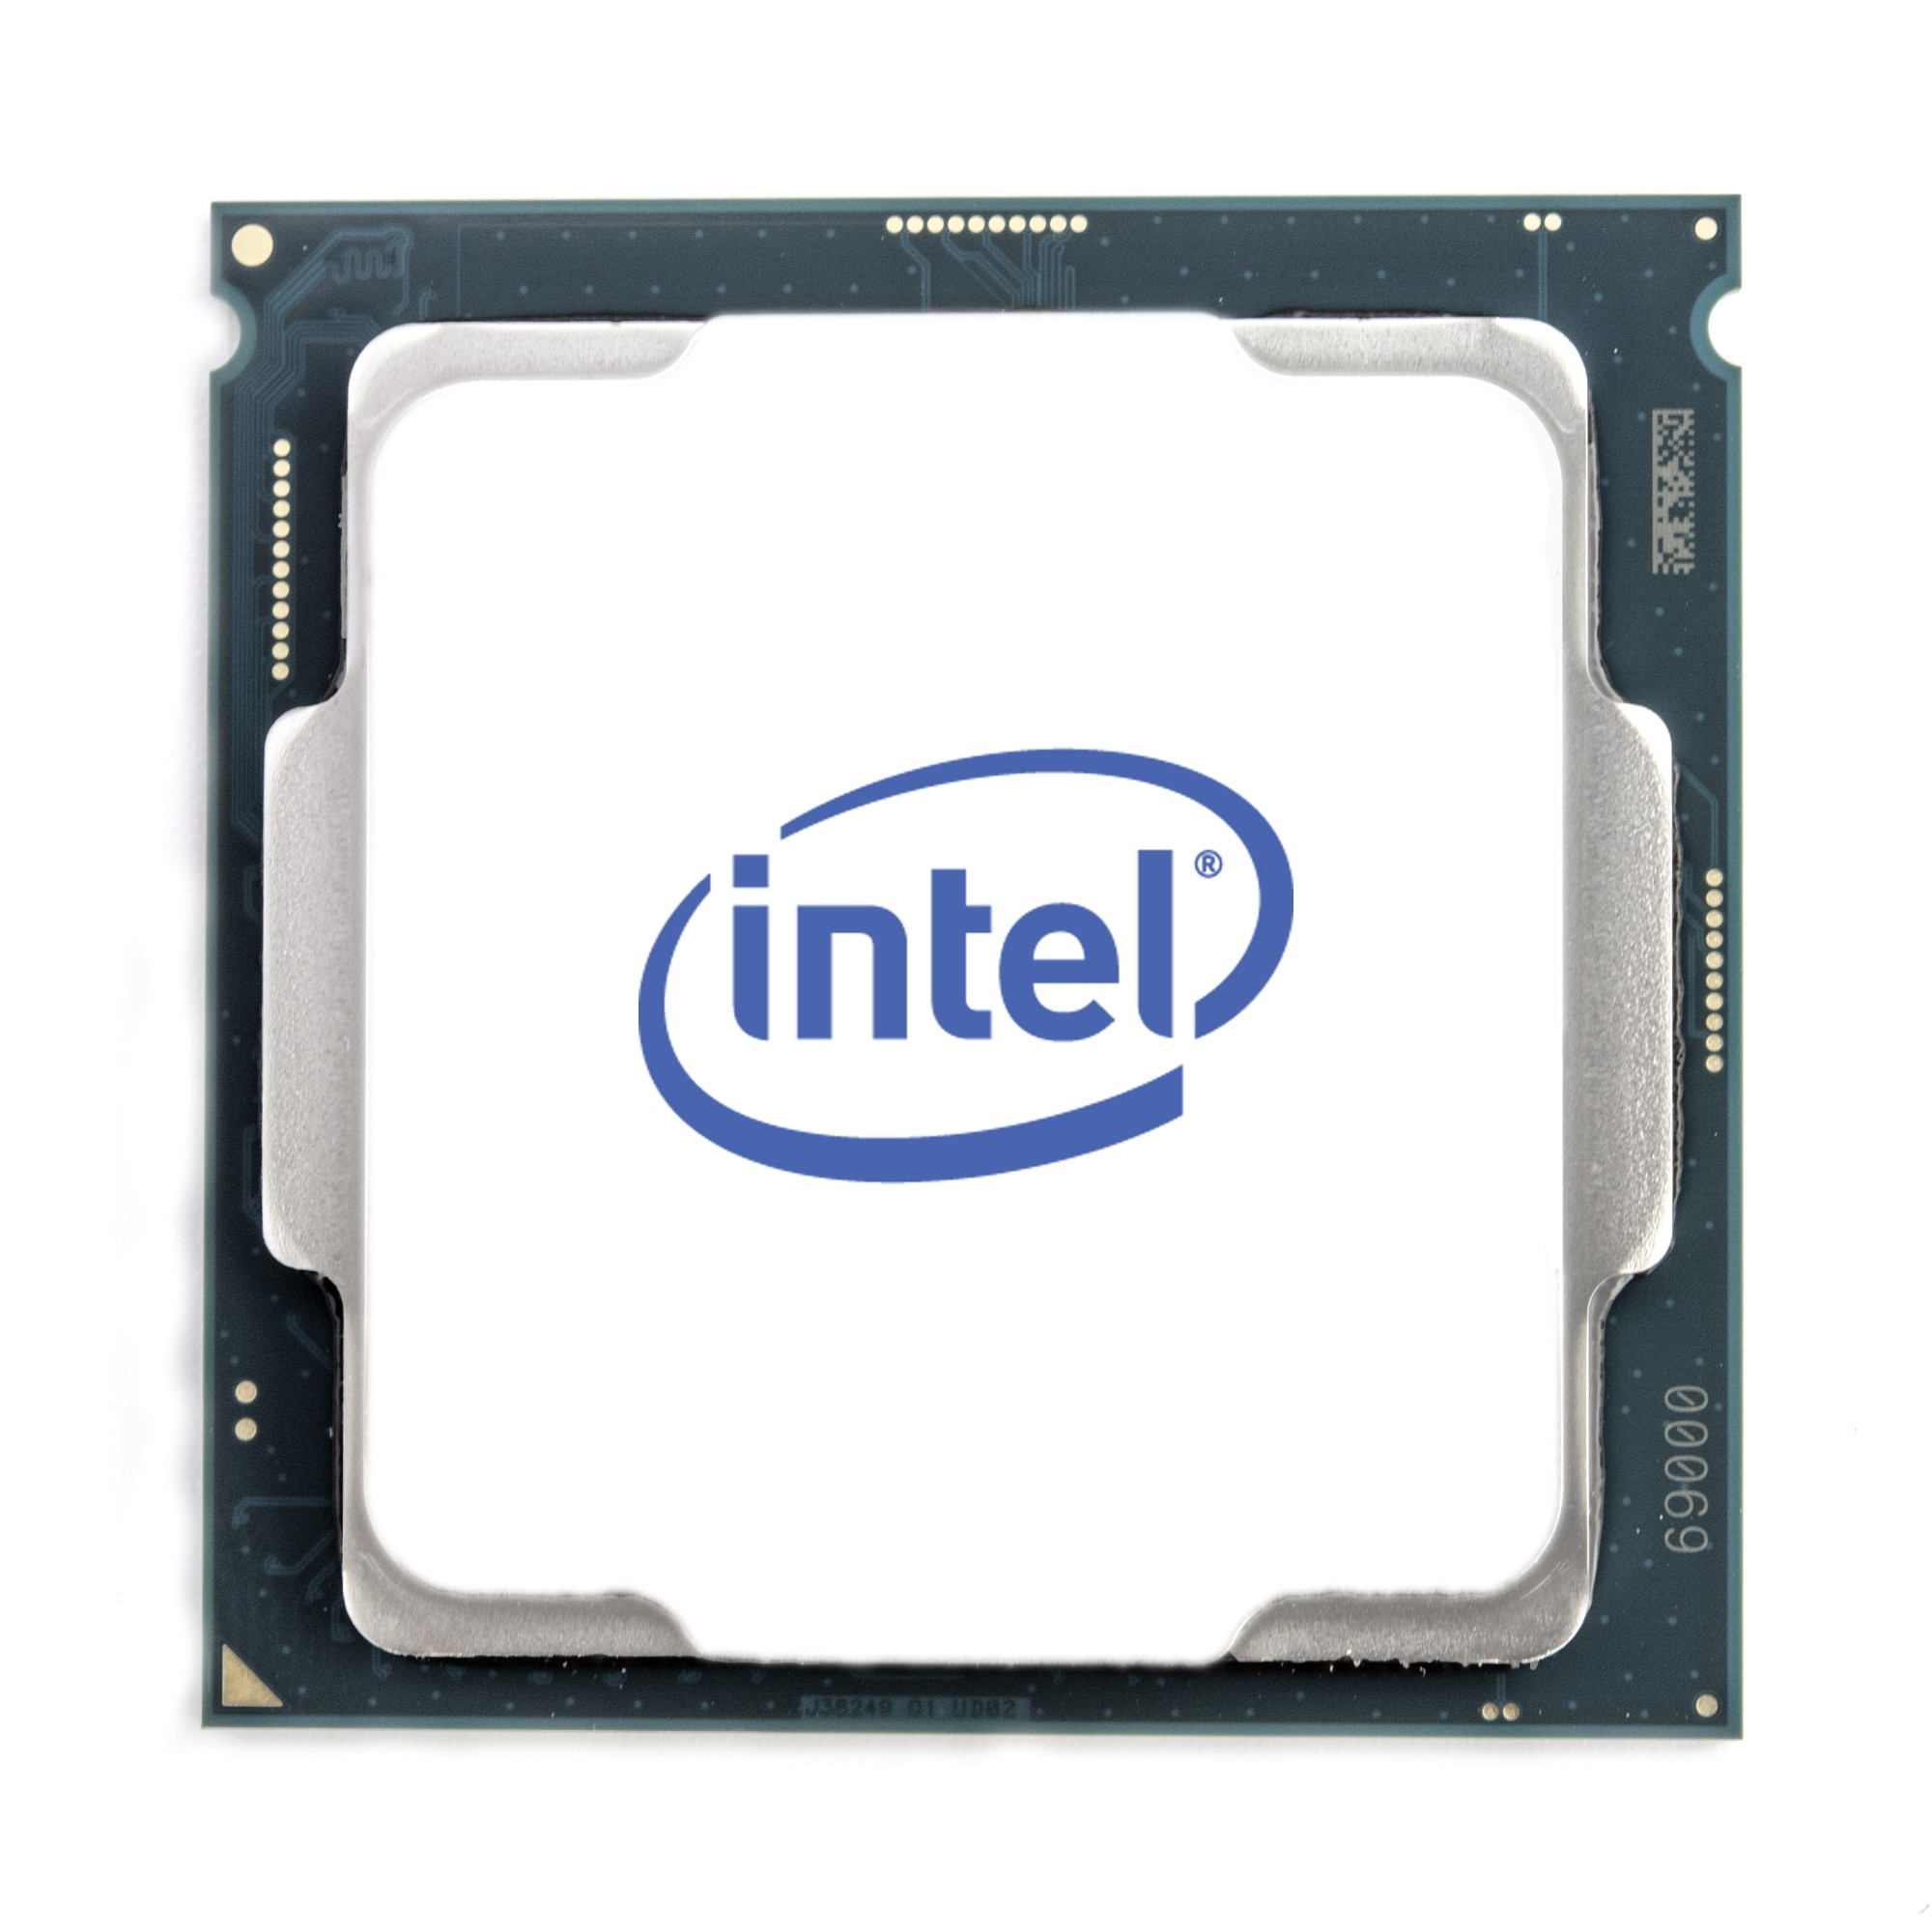 Intel Core i9-9900 processor 3.1 GHz Box 16 MB Smart Cache